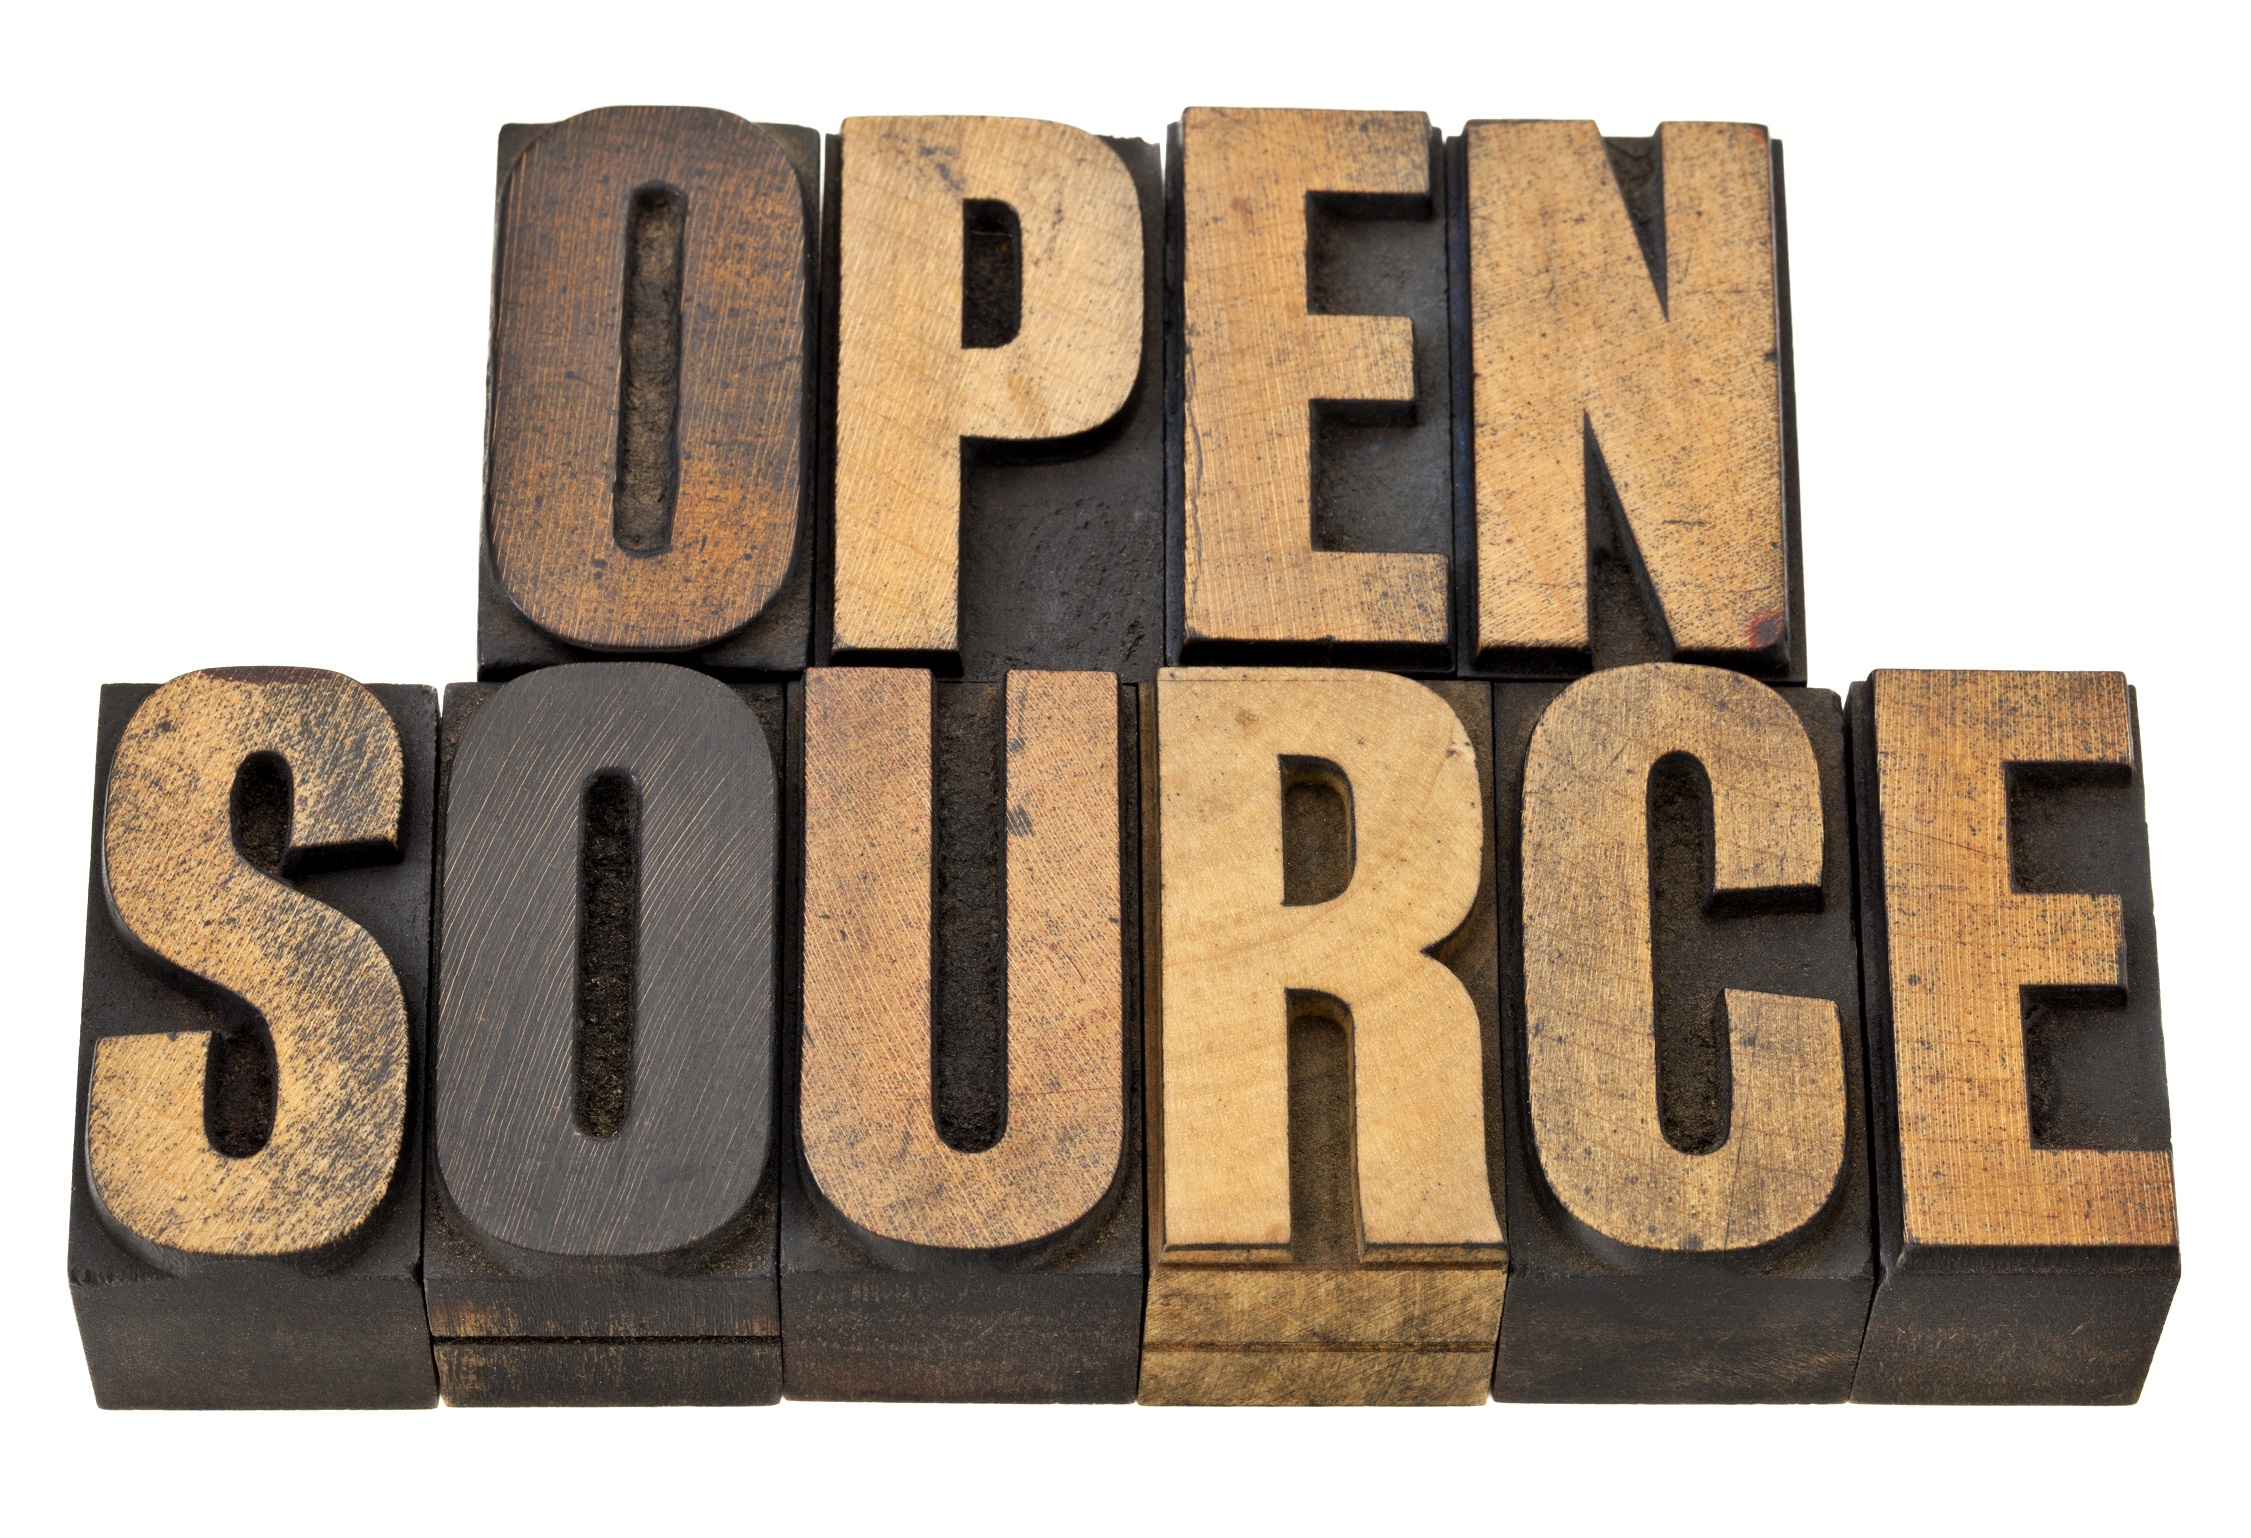 6 Great Open Source Software Alternatives for Startup Tech Companies